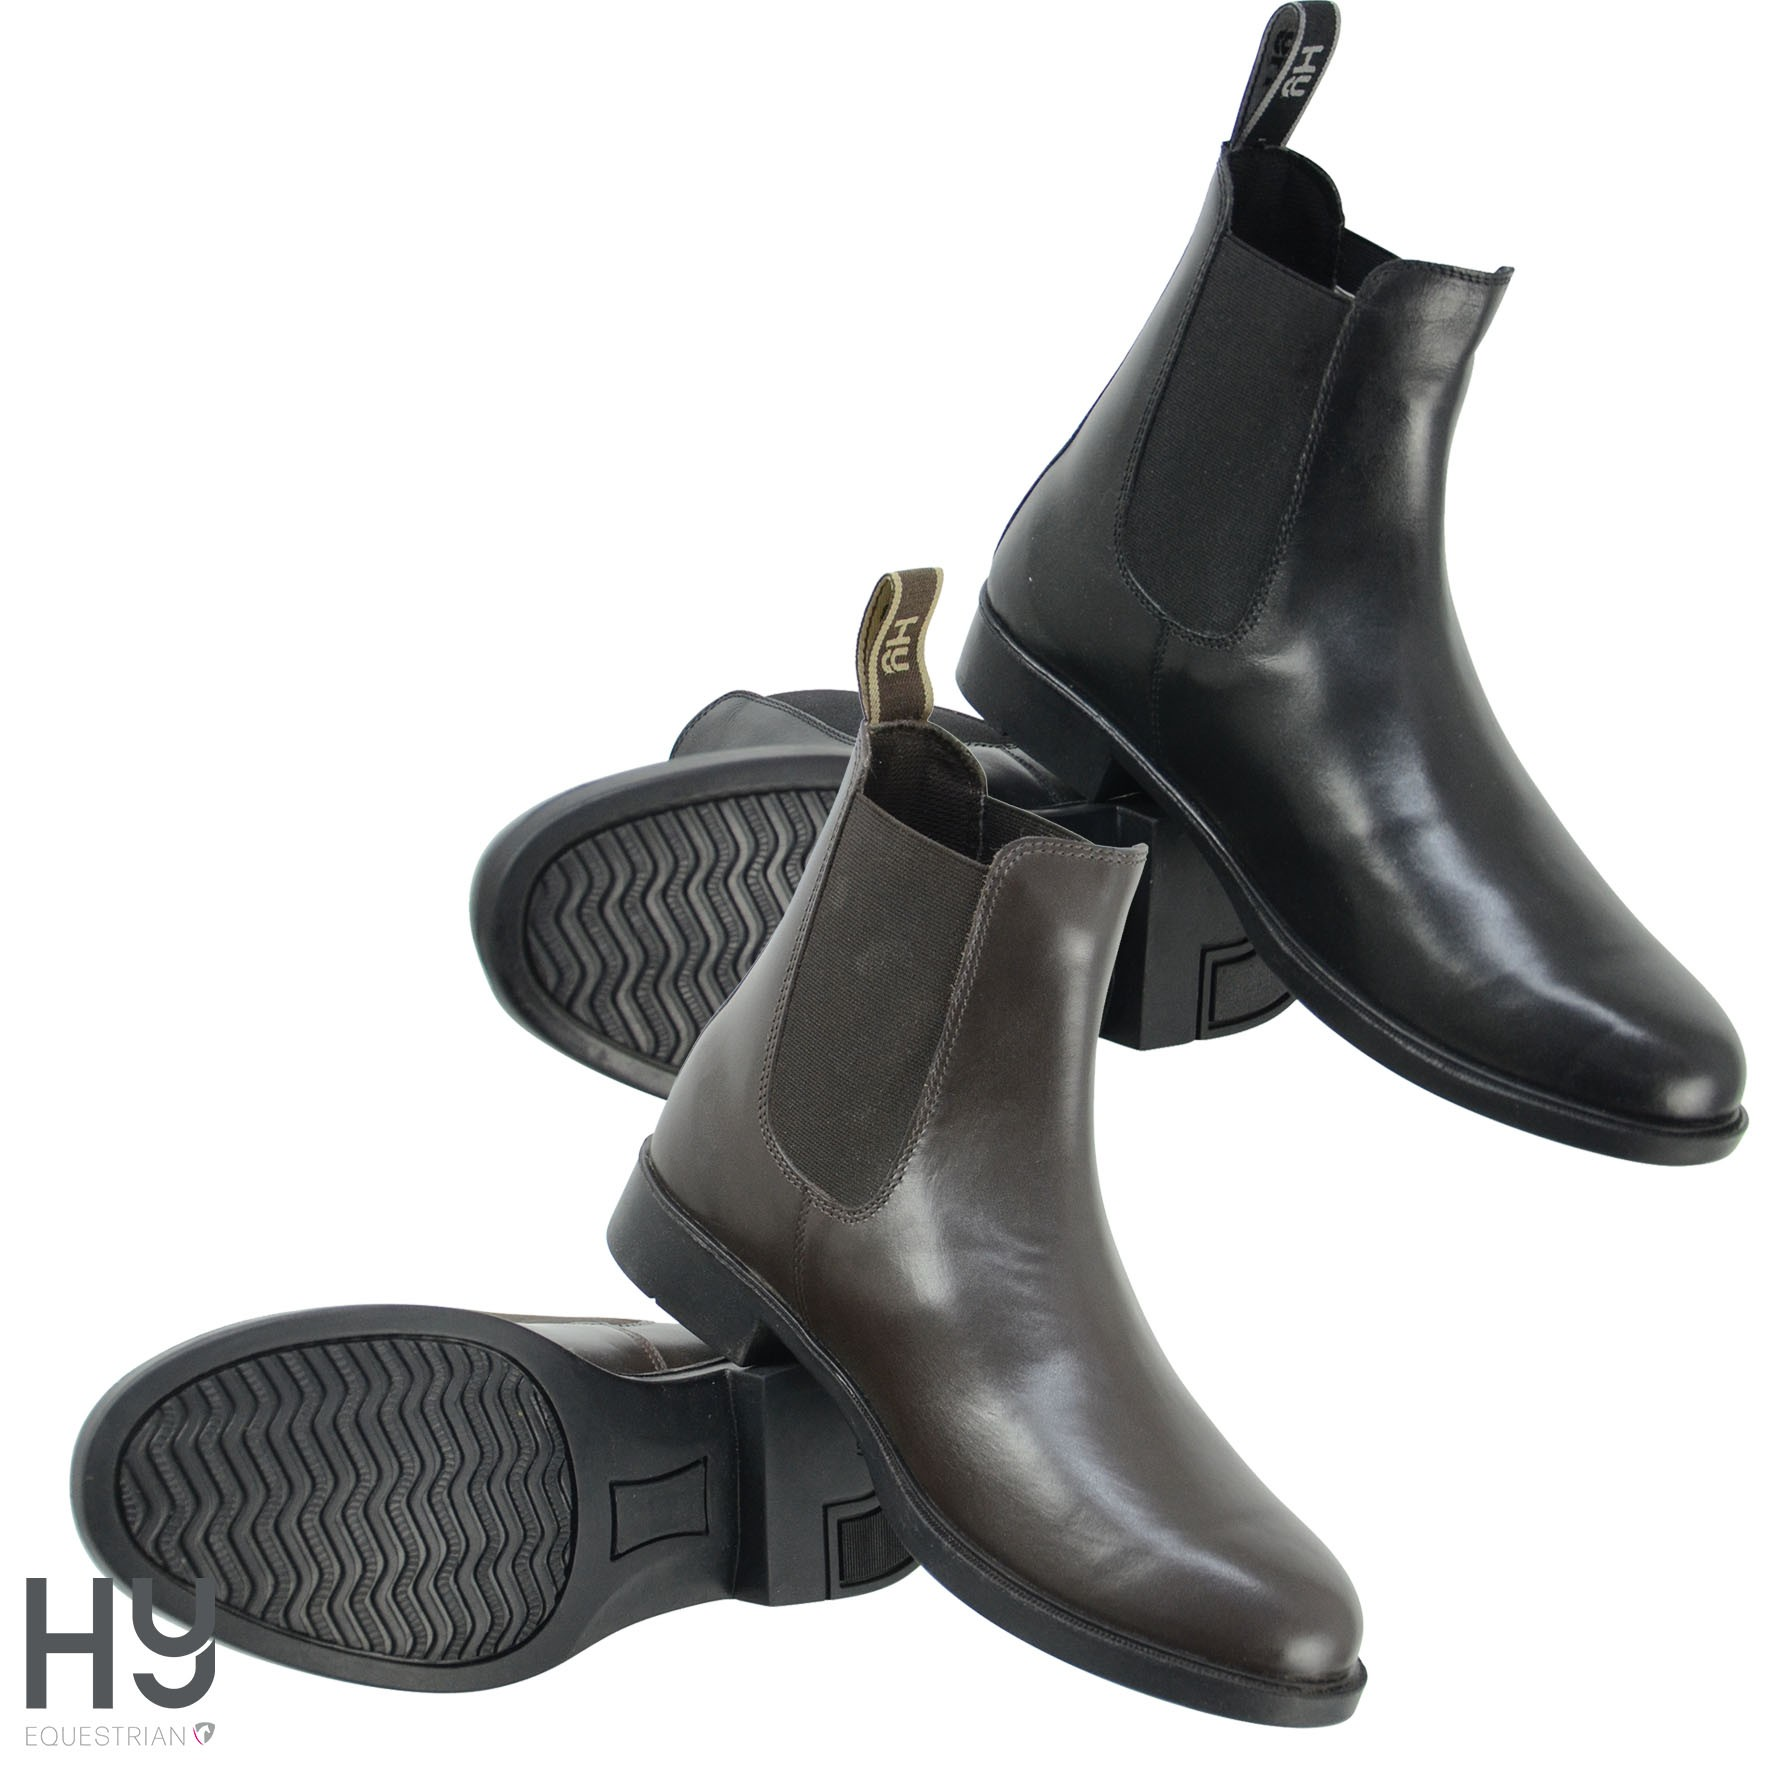 HyLAND Melford Leather Jodhpur Boots